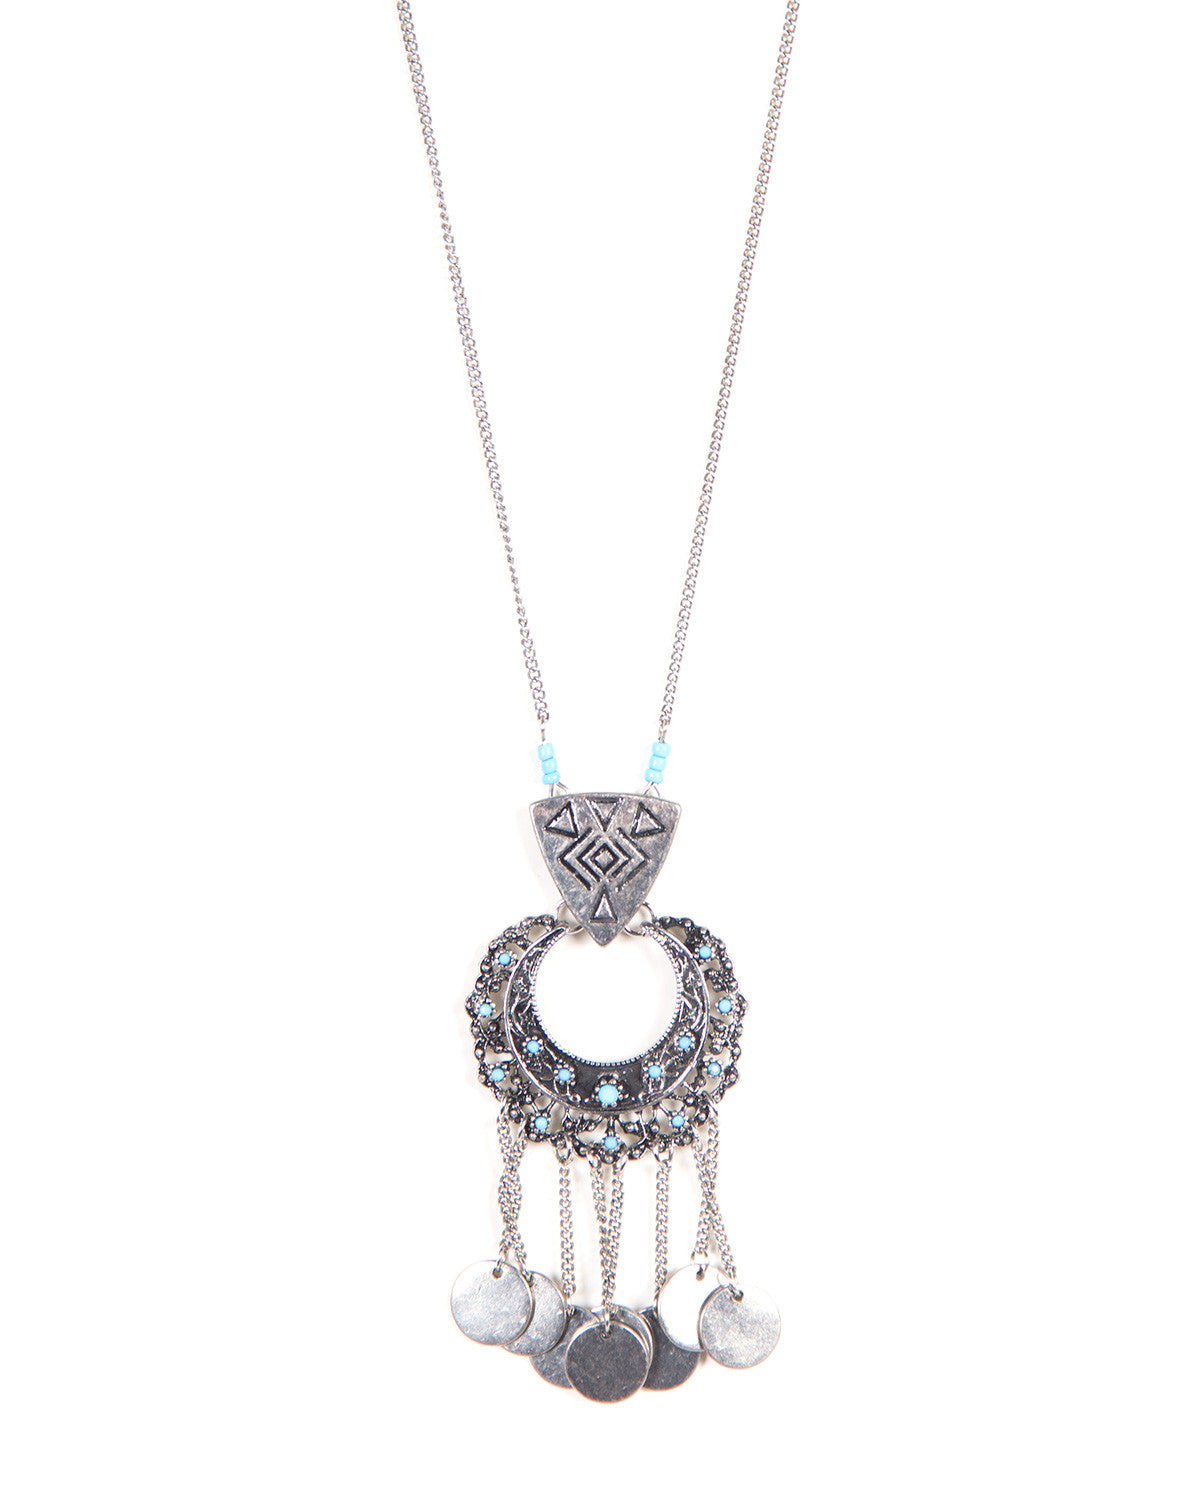 Beaded Medallion Tribal Necklace - Light Blue